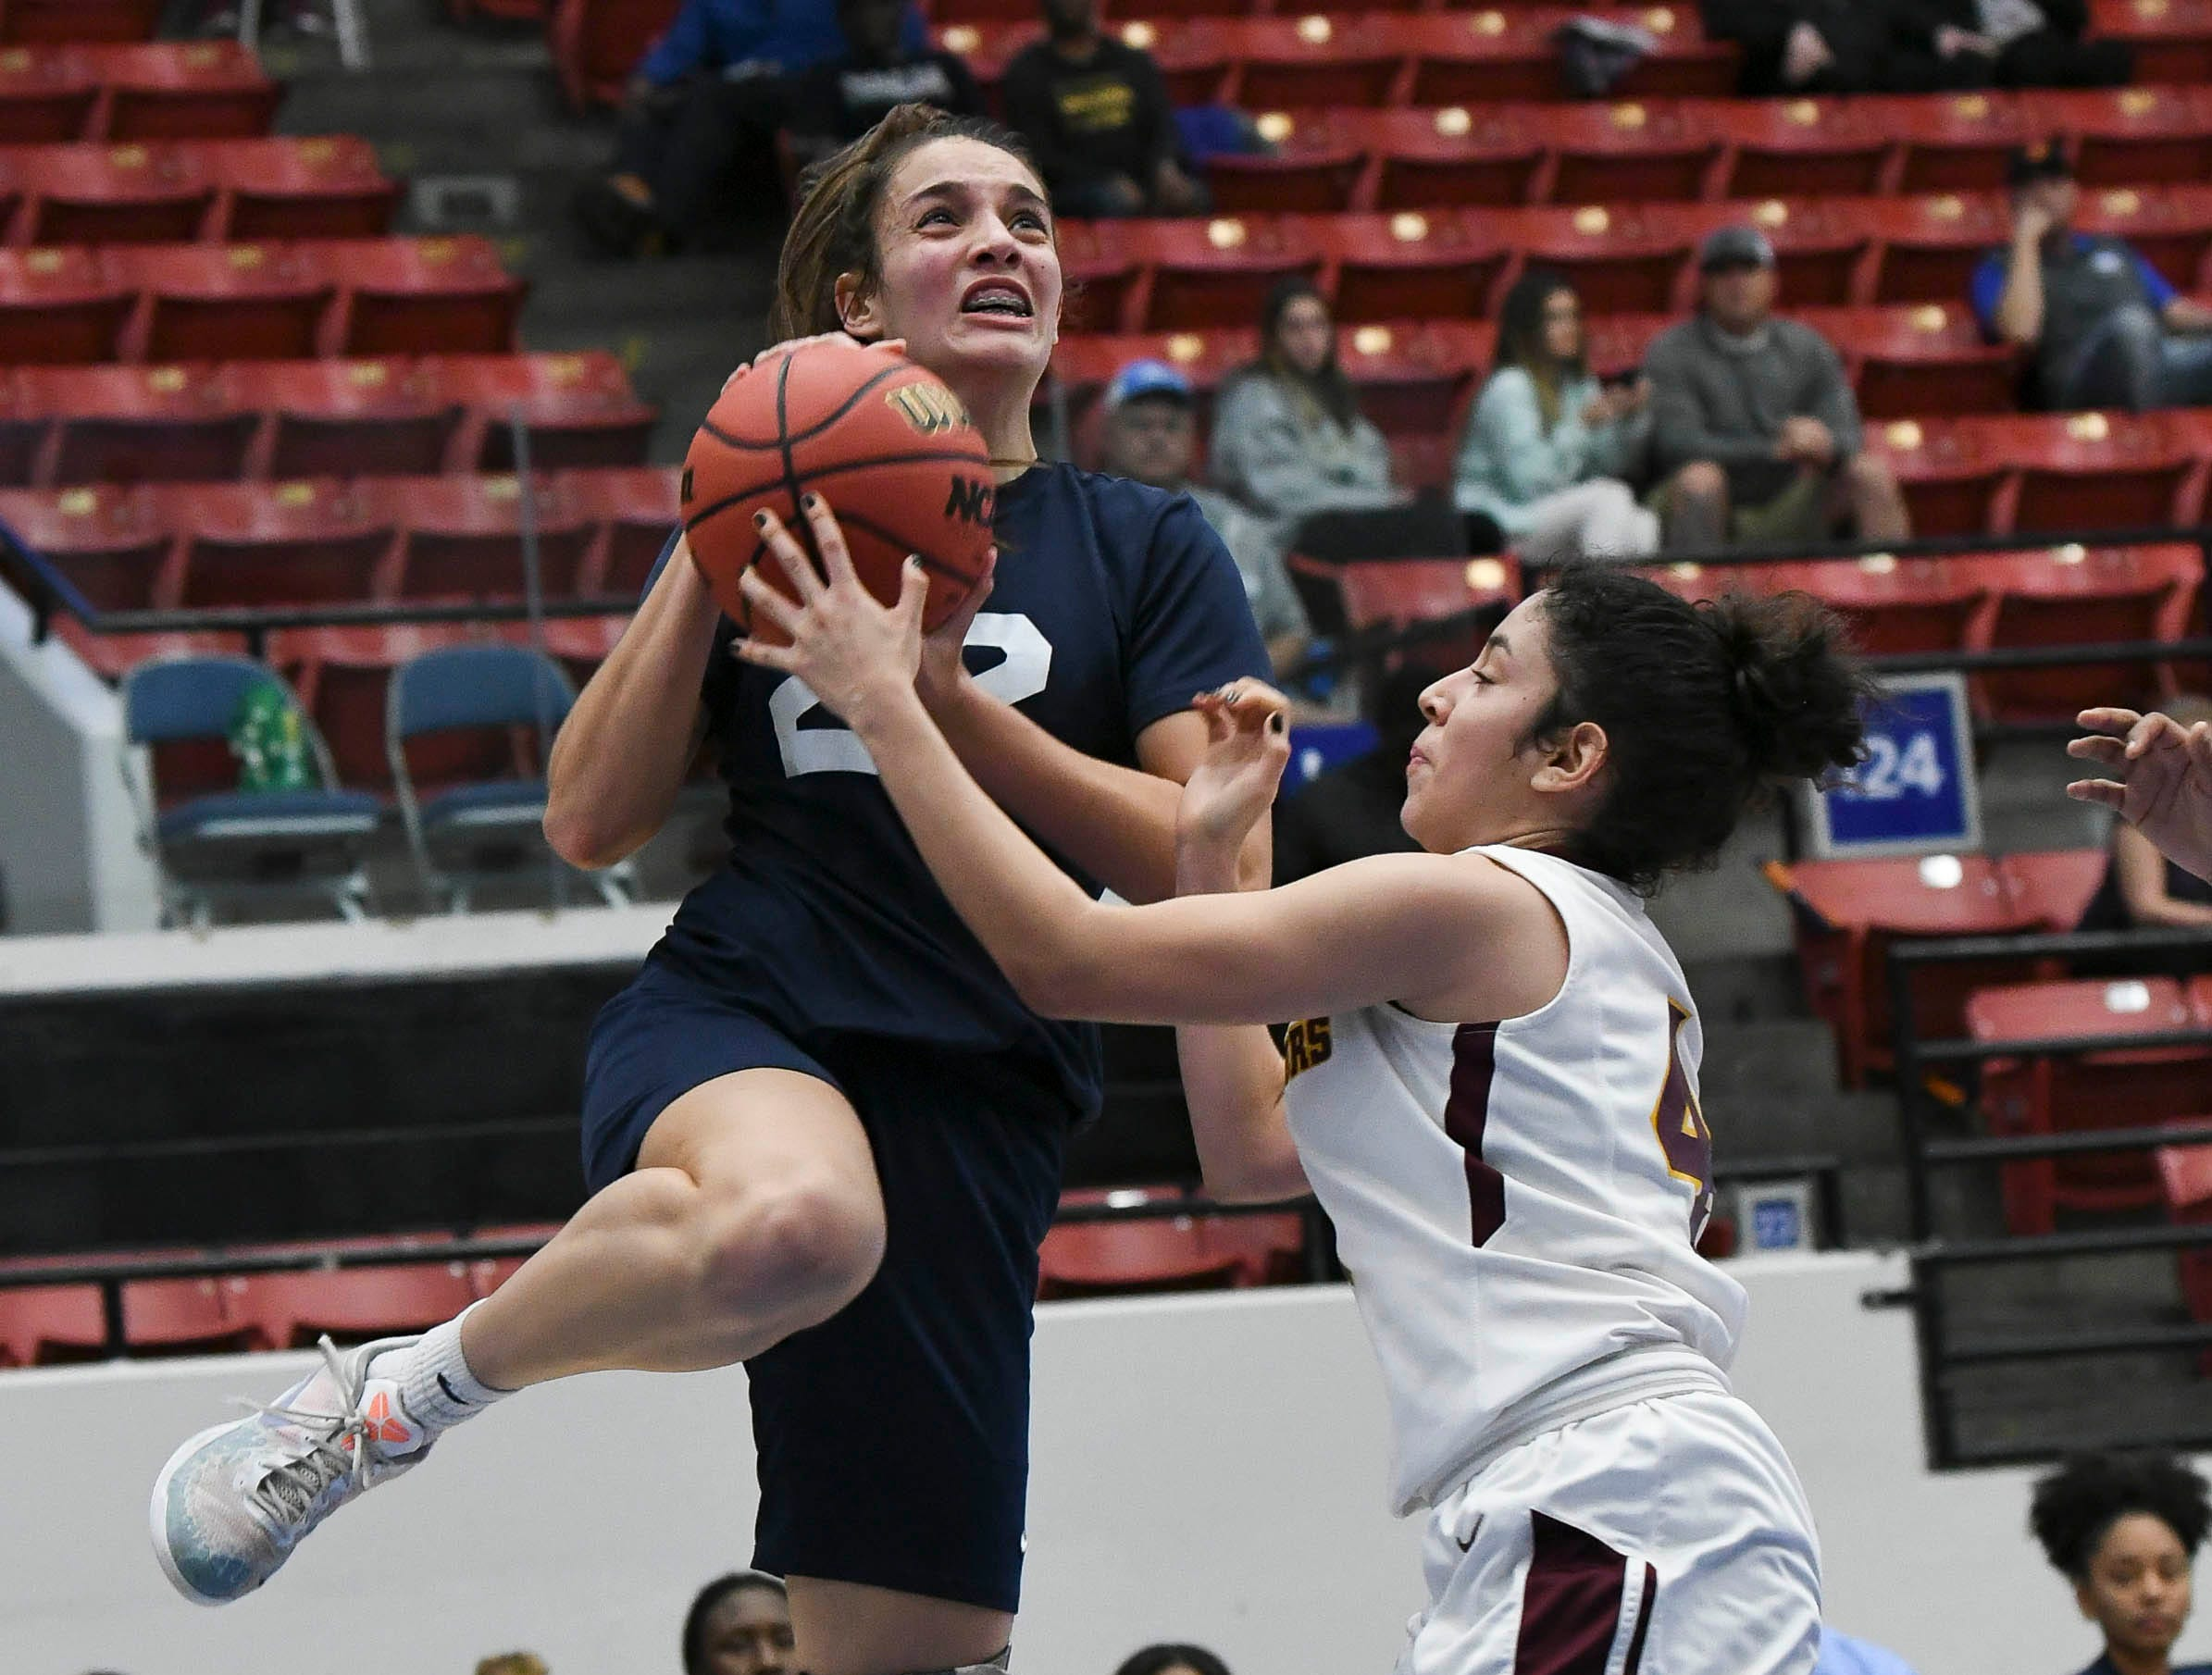 Aleah Sorrentino of Florida Prep is fouled by Domenica Zamora of Bayshore Christian during Tuesday's Class 2A state championship game.